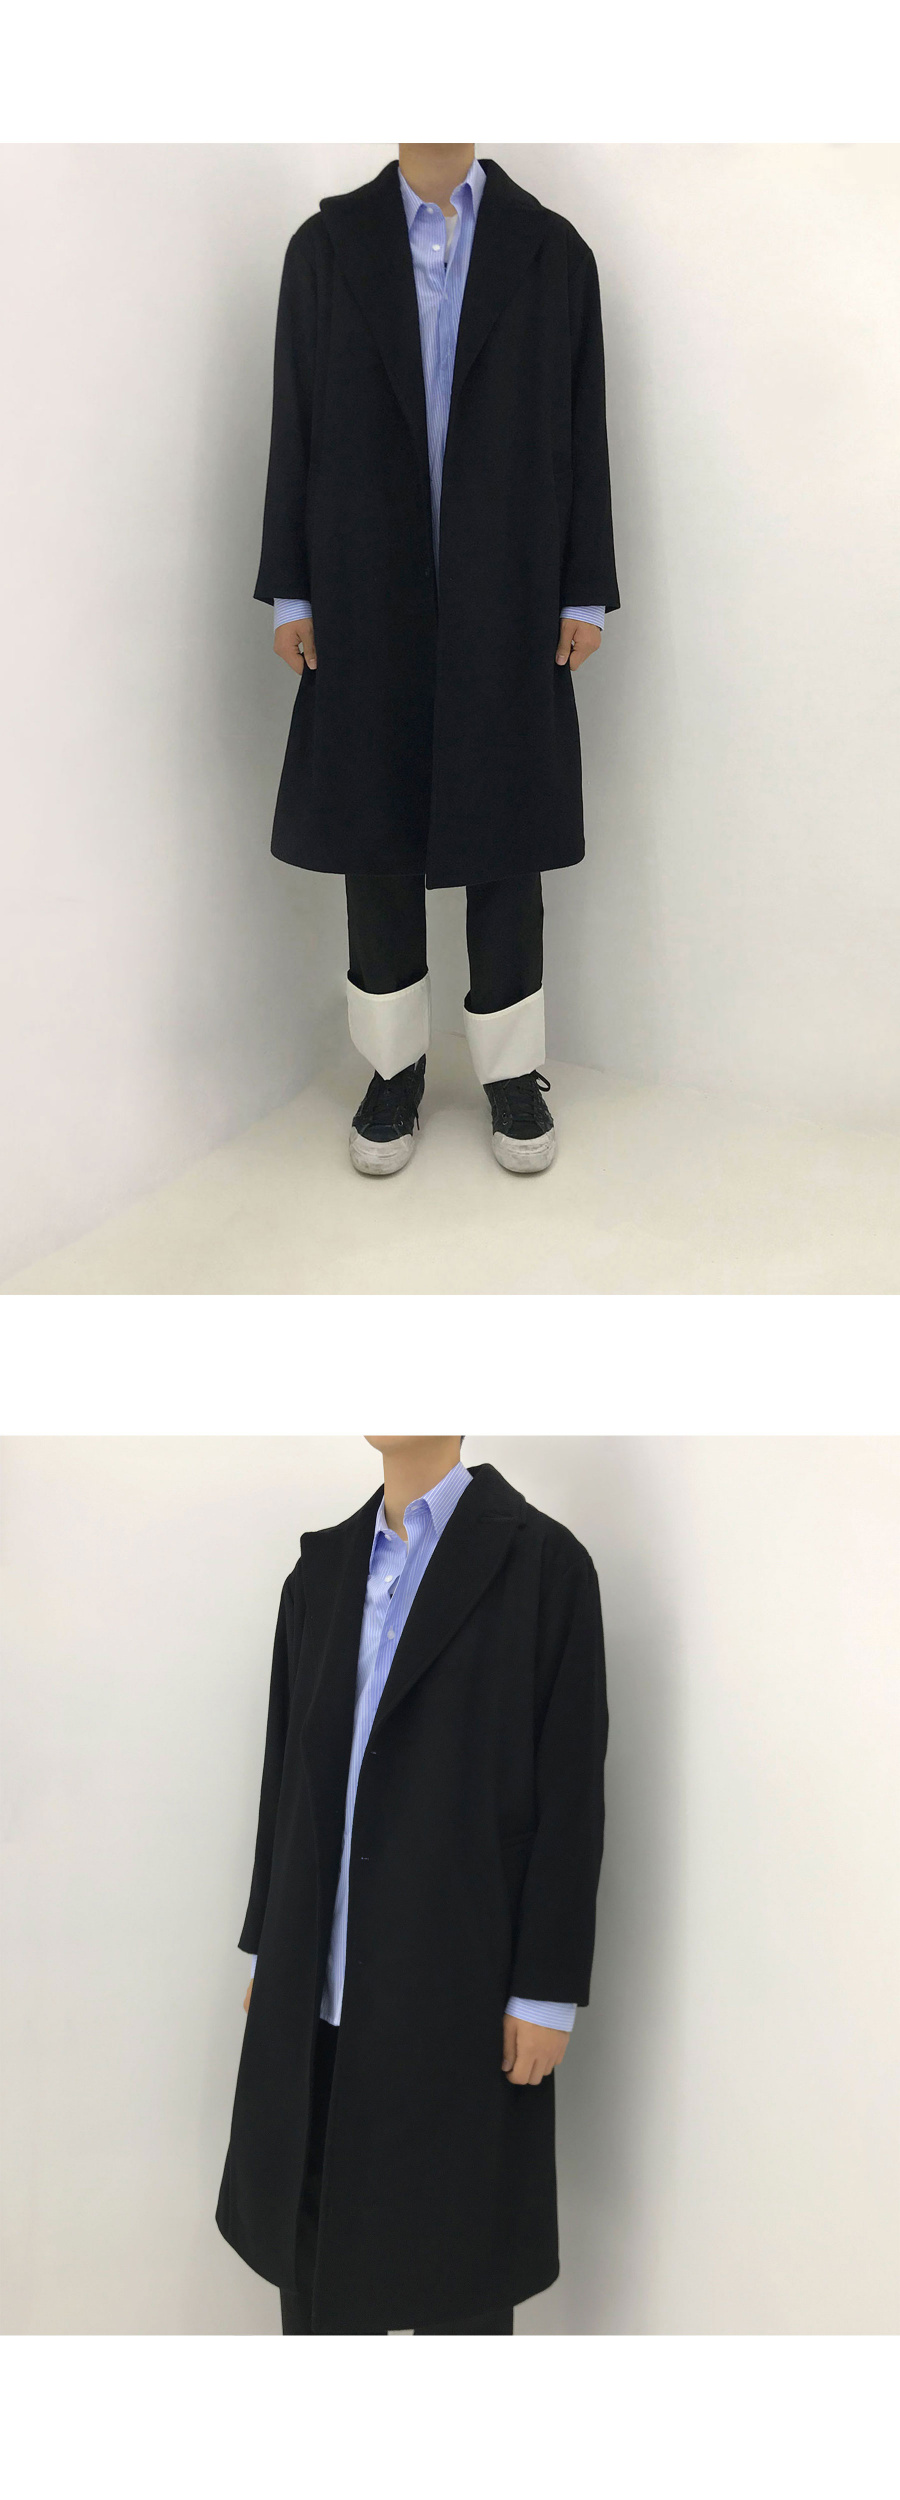 돈애스크마이플랜(DAMP) HIDDEN MESSAGE CASHMERE OVERSIZED COAT 2.0